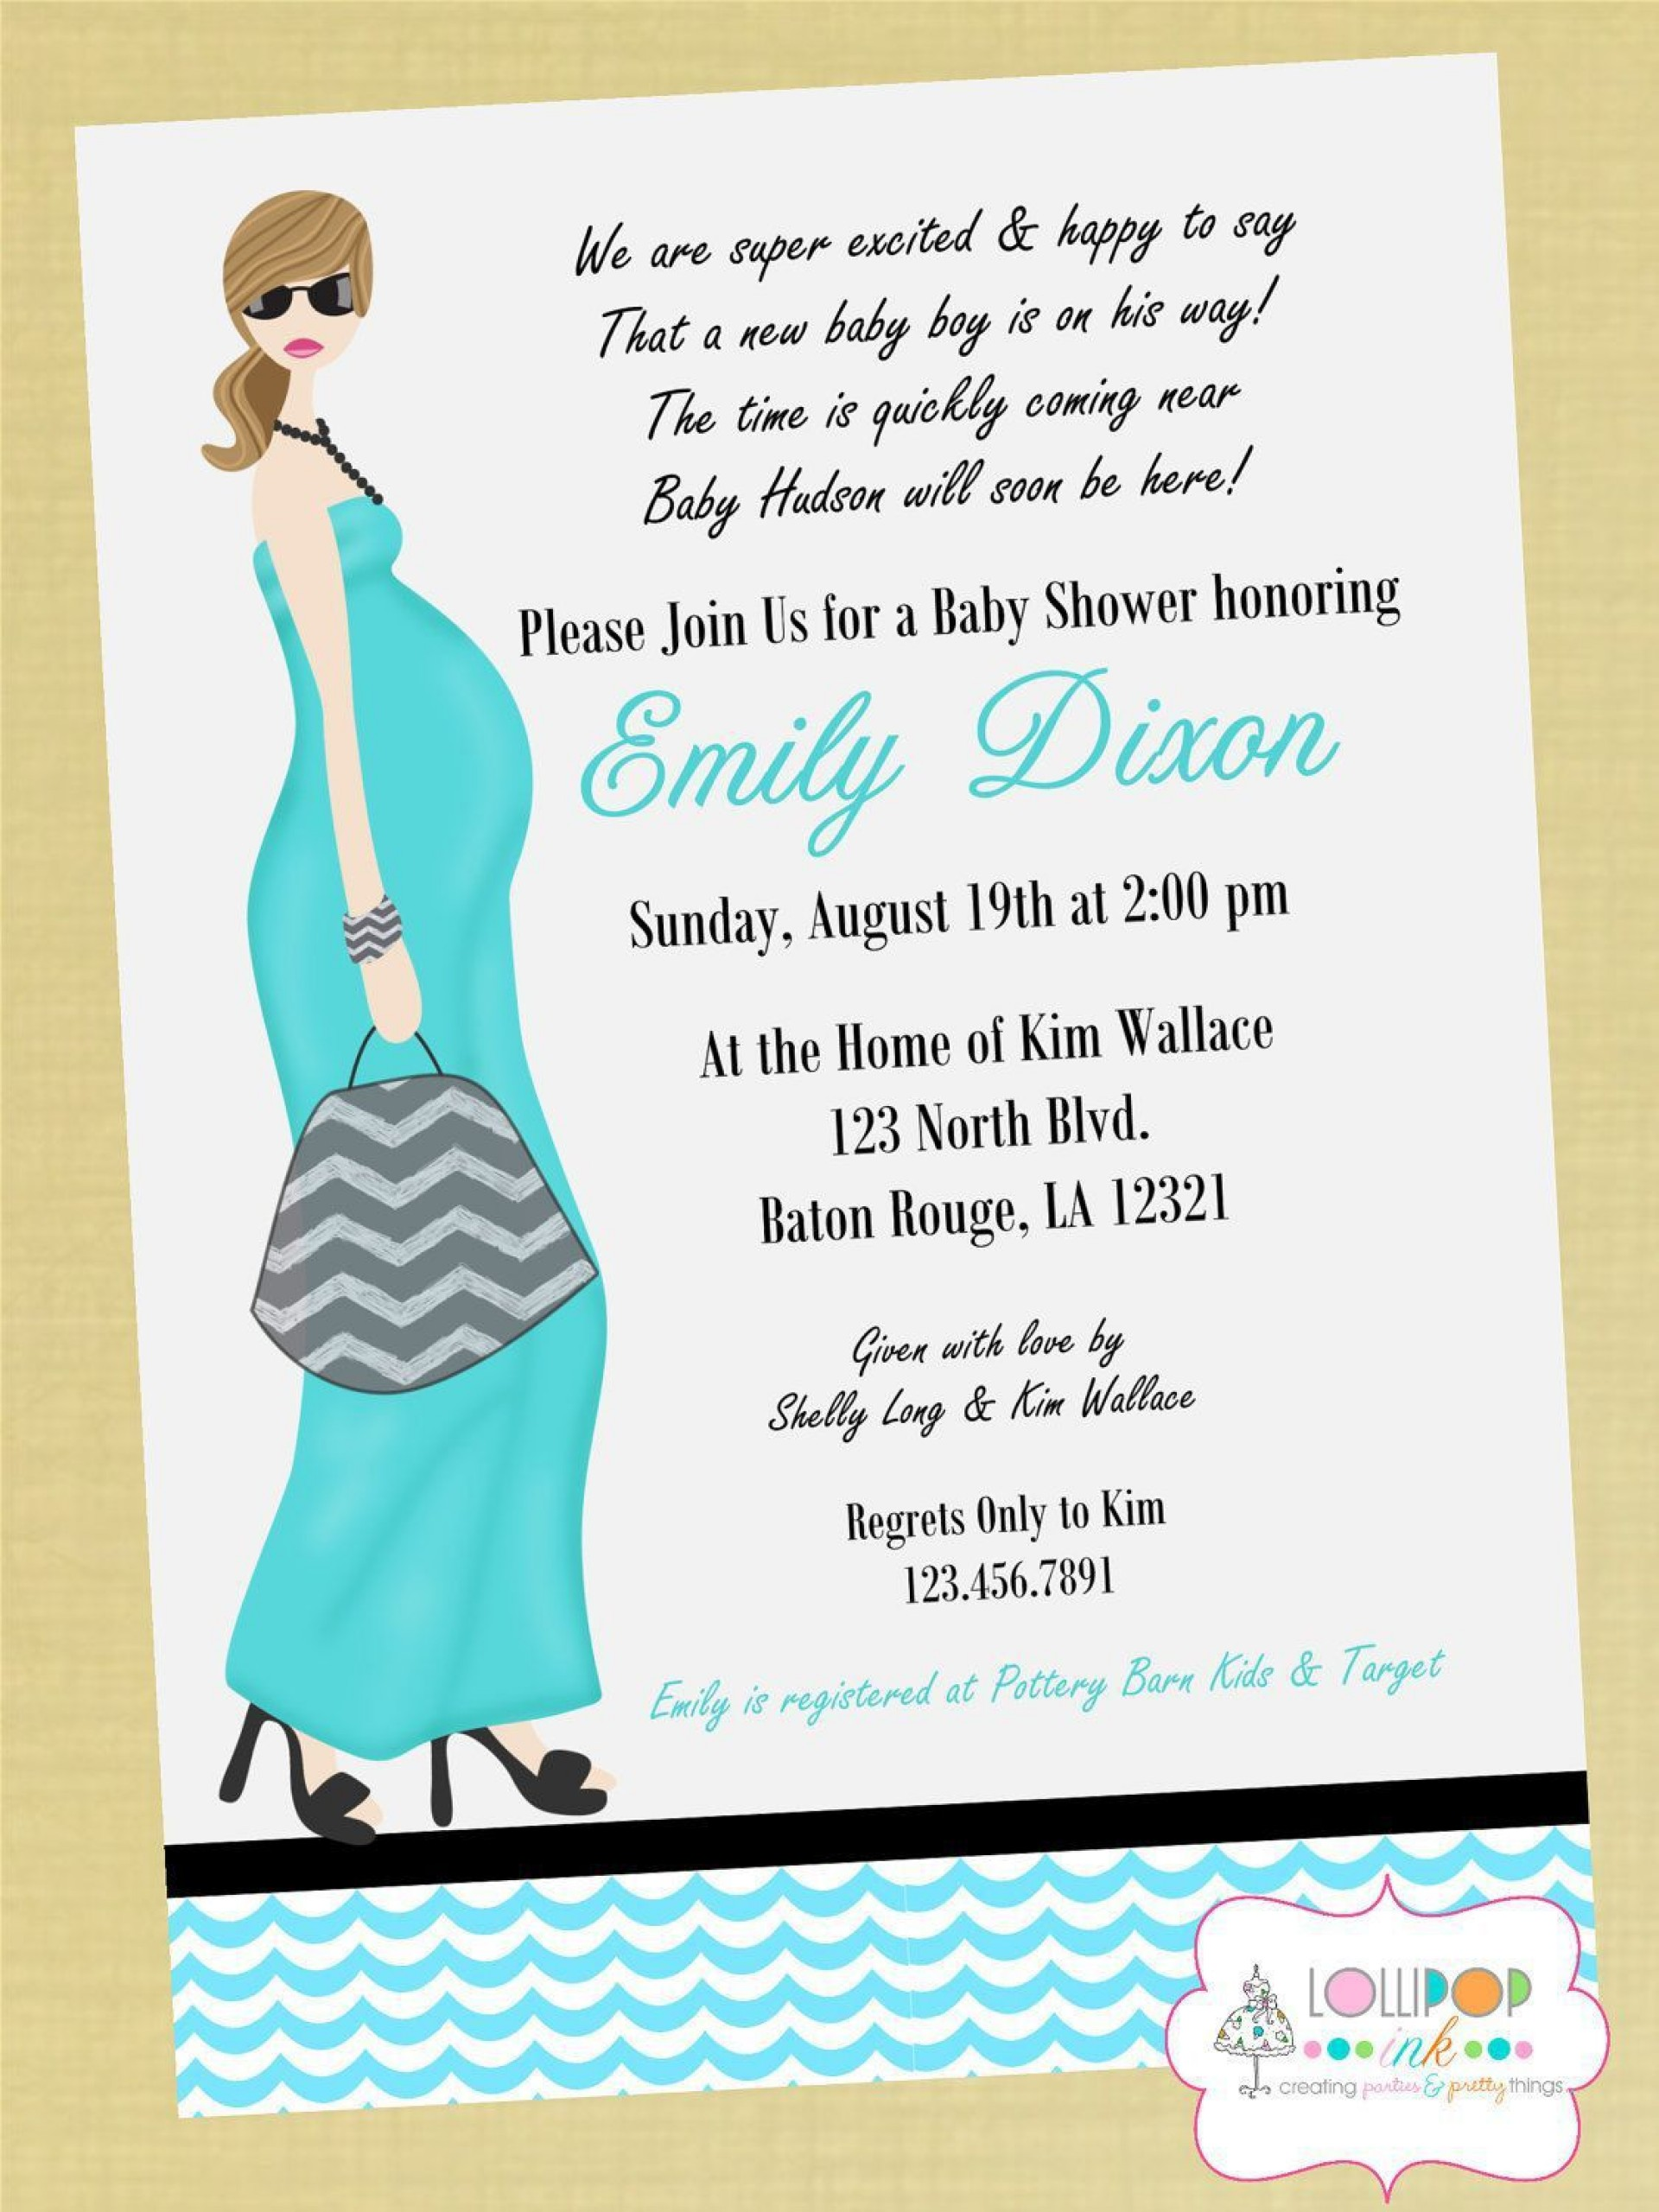 002 Amazing Baby Shower Invitation Wording Example High Resolution  Examples Invite Coed Idea For Boy1920